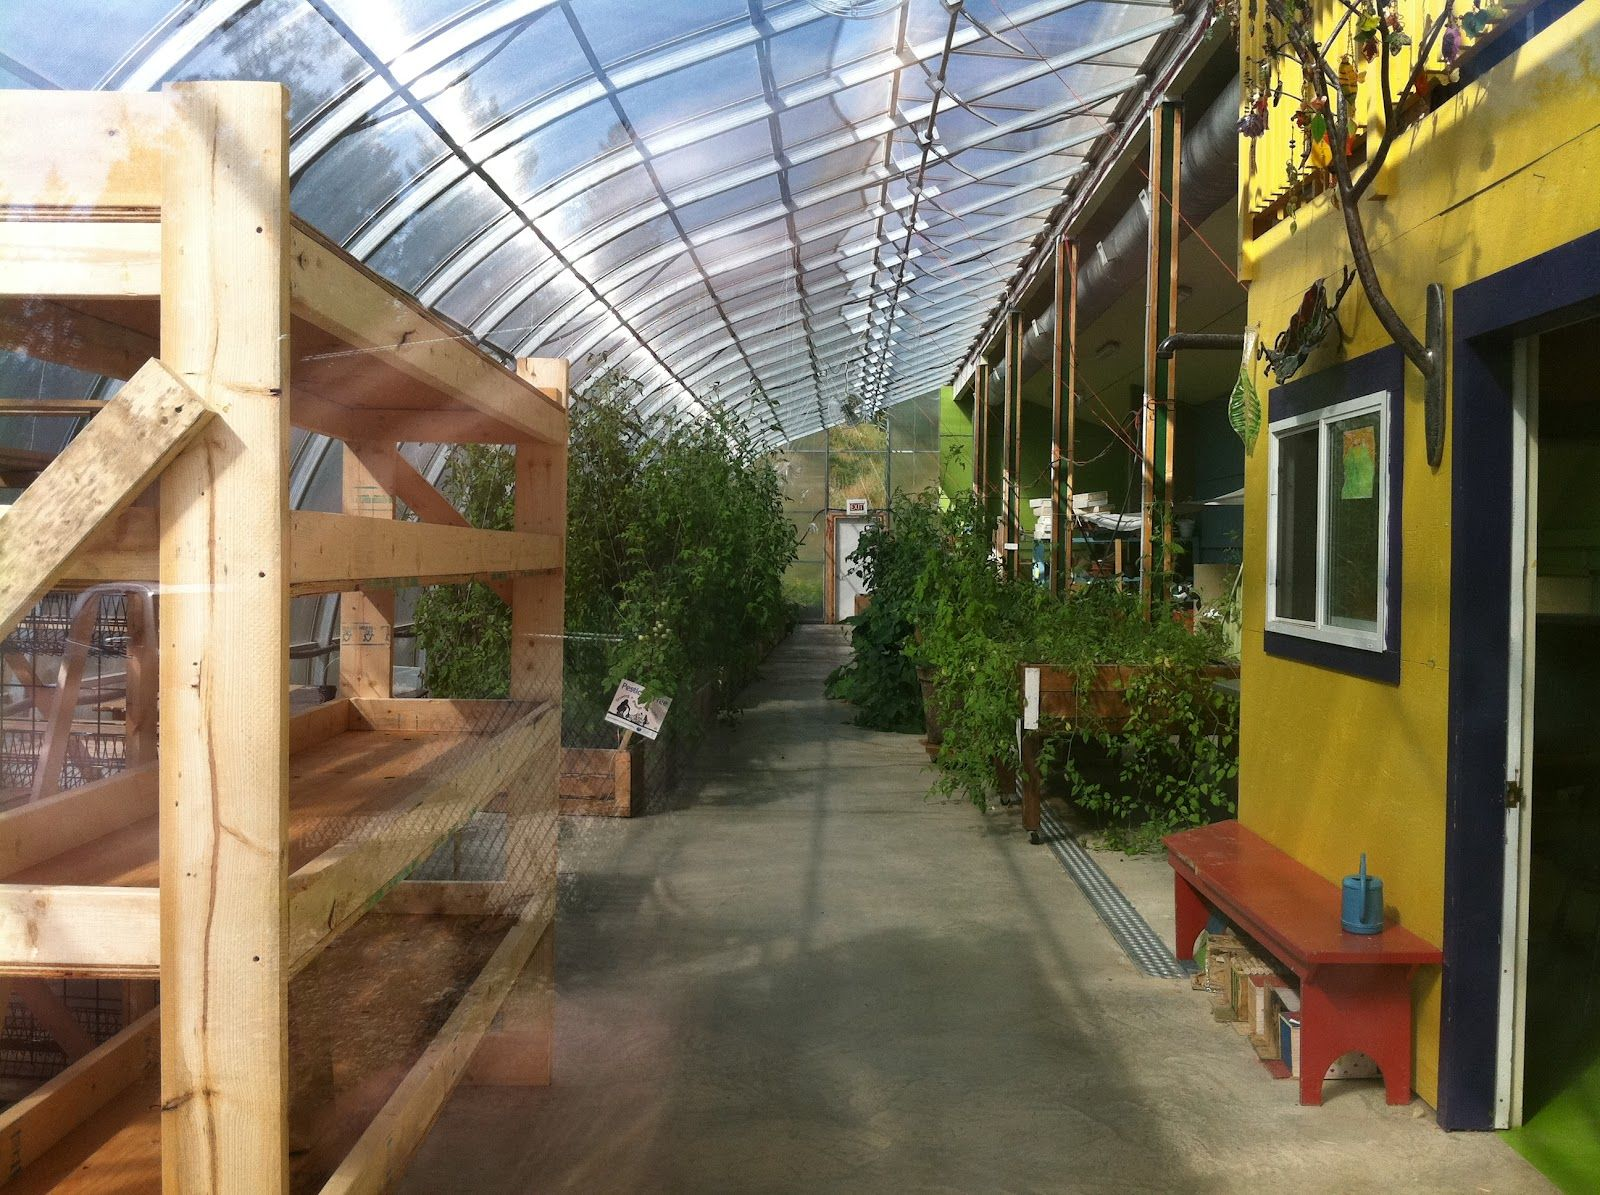 Back Yard Permaculture Design | ... Permaculture ... on Backyard Permaculture Design id=92022